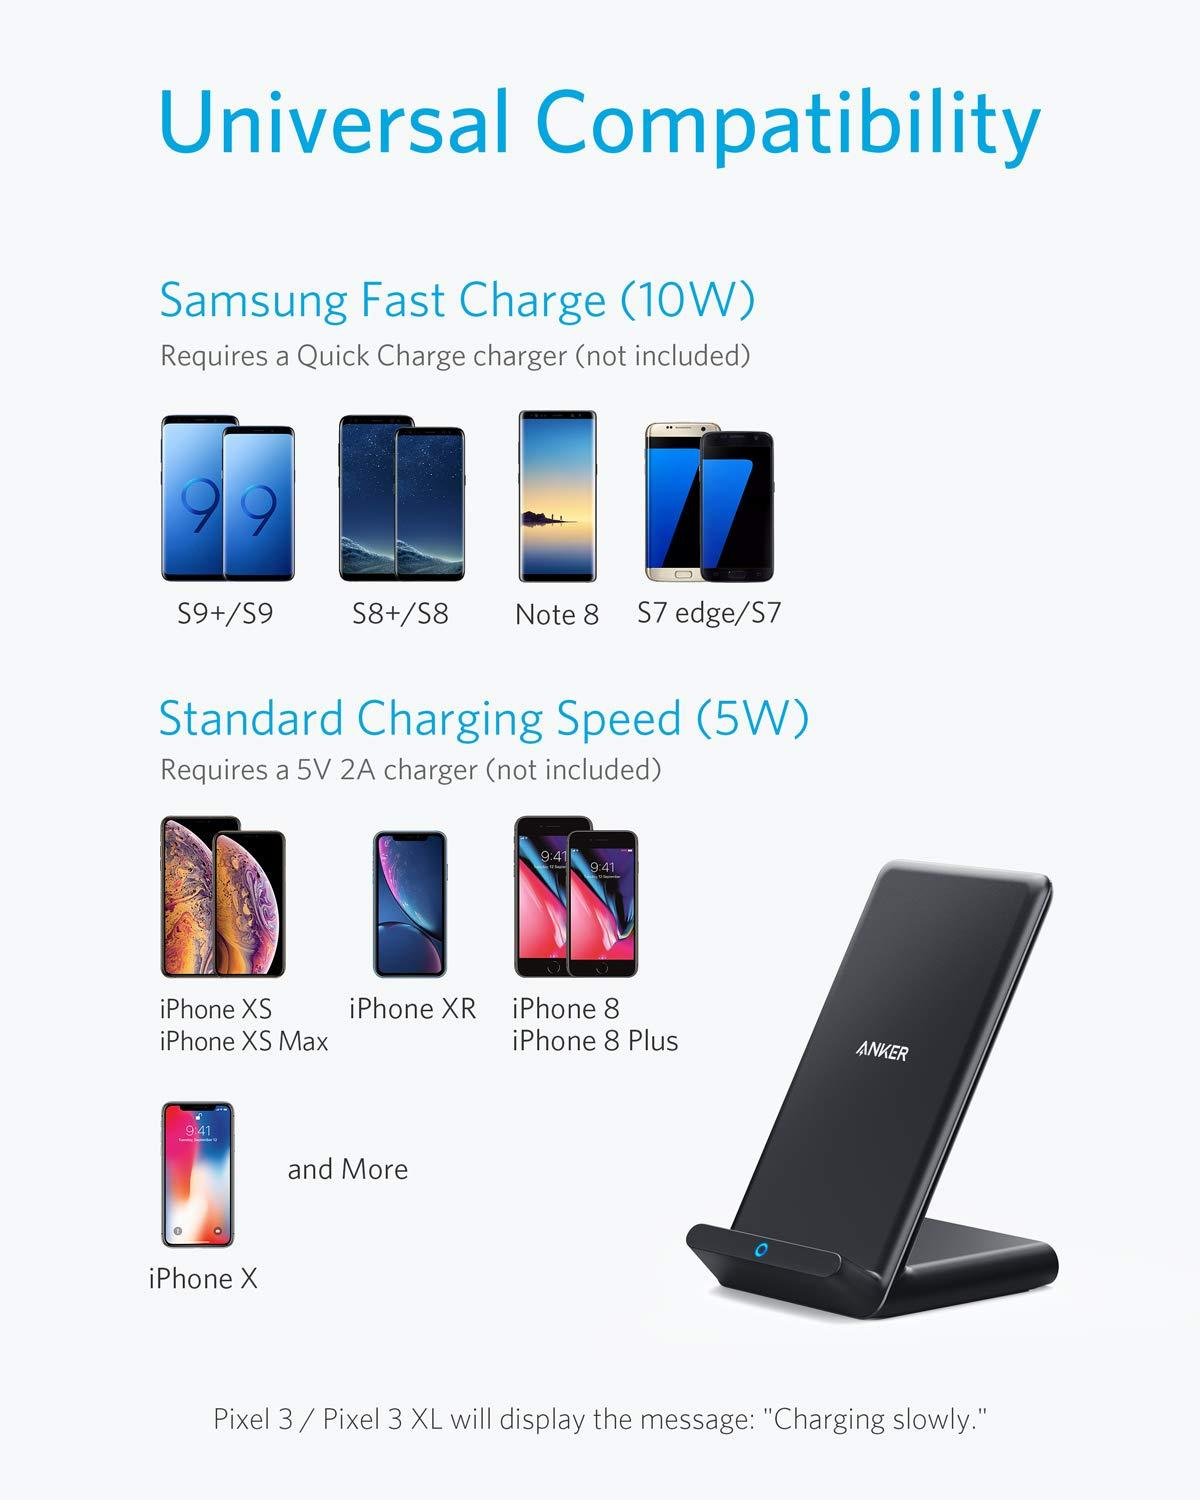 Amuoc 10W Qi-Certified Wireless Charging Pad No AC Adapter - 2019 New Version 10W Fast-Charging Galaxy S10//S9//S9+//S8//Note 9//Note 8 Compatible iPhone Xs Max//XR//XS//X//8//8 Plus Fast Wireless Charger